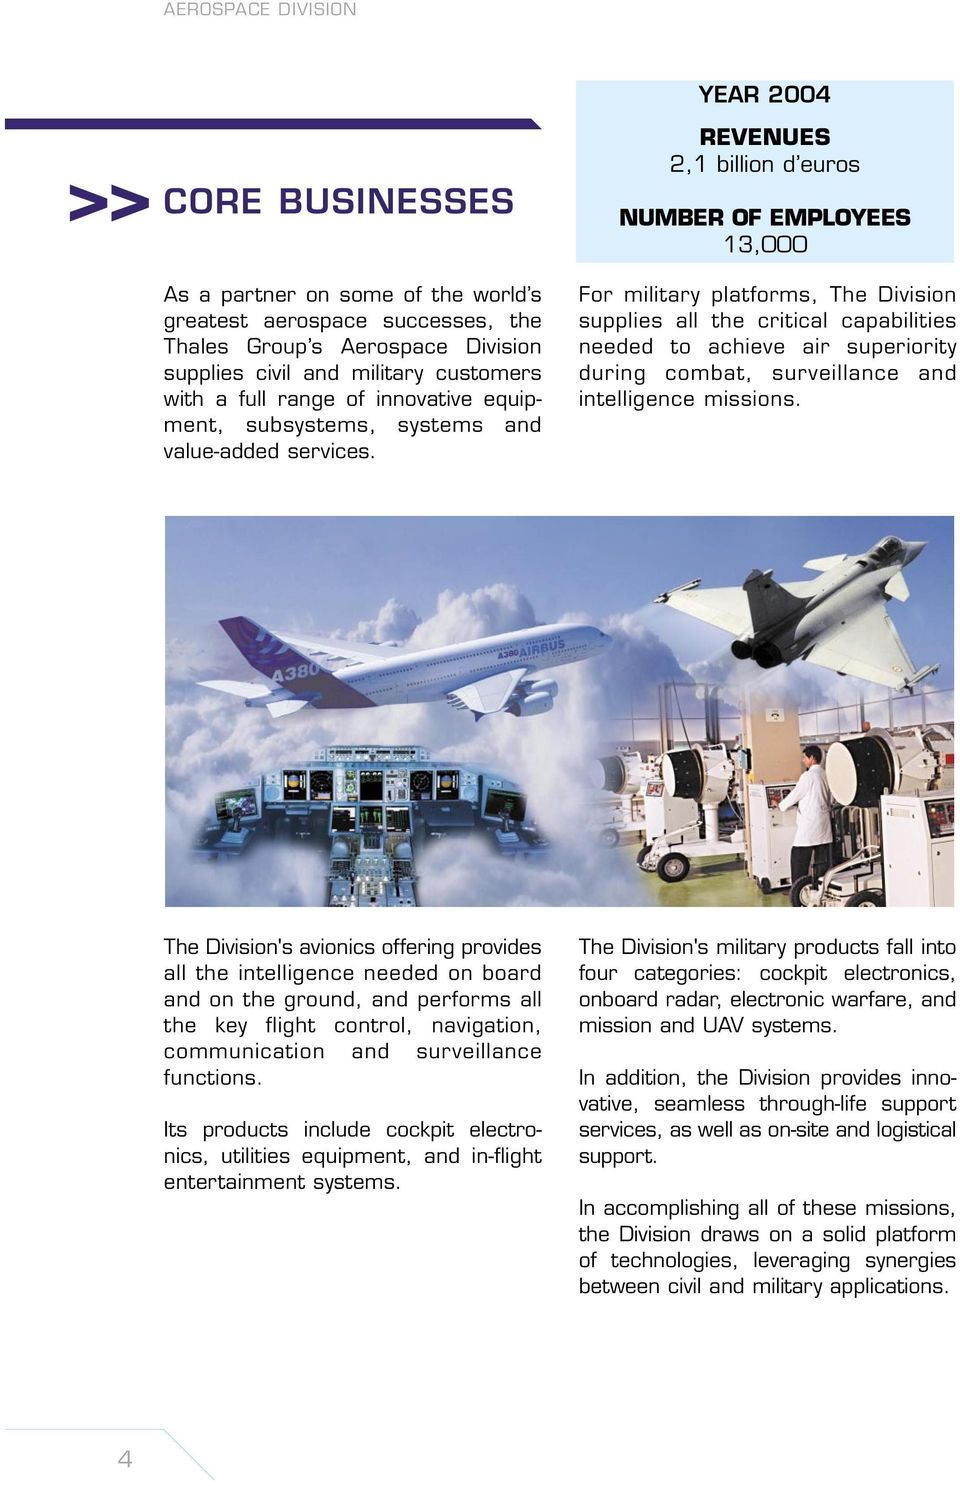 Quality Manual Aerospace Division To Become Our Customer S Airsuperiority Weekly Digital Timer Circuit Year 2004 Revenues 21 Billion D Euros Number Of Employees 13000 For Military Platforms